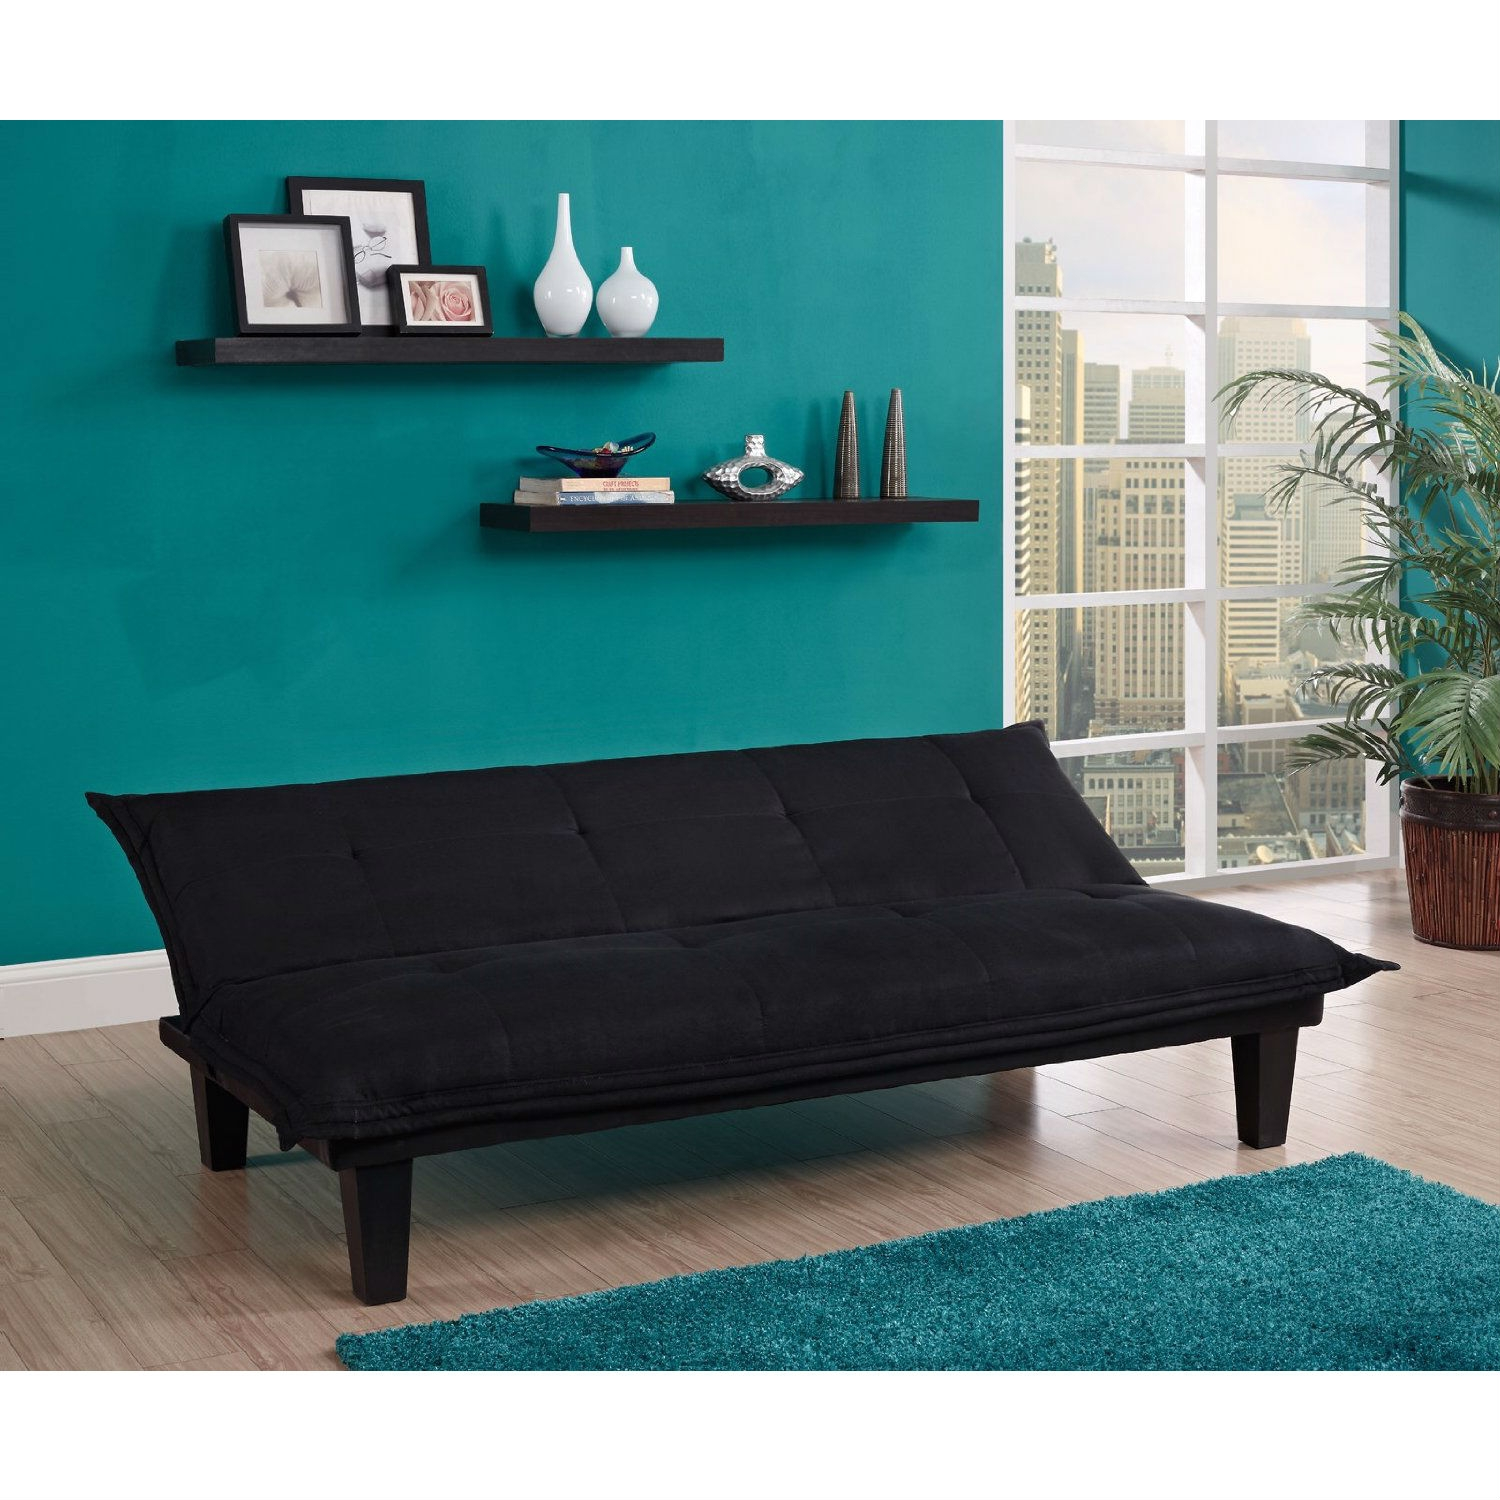 Black Microfiber Click-Clack Sleeper Sofa Bed Futon Lounger